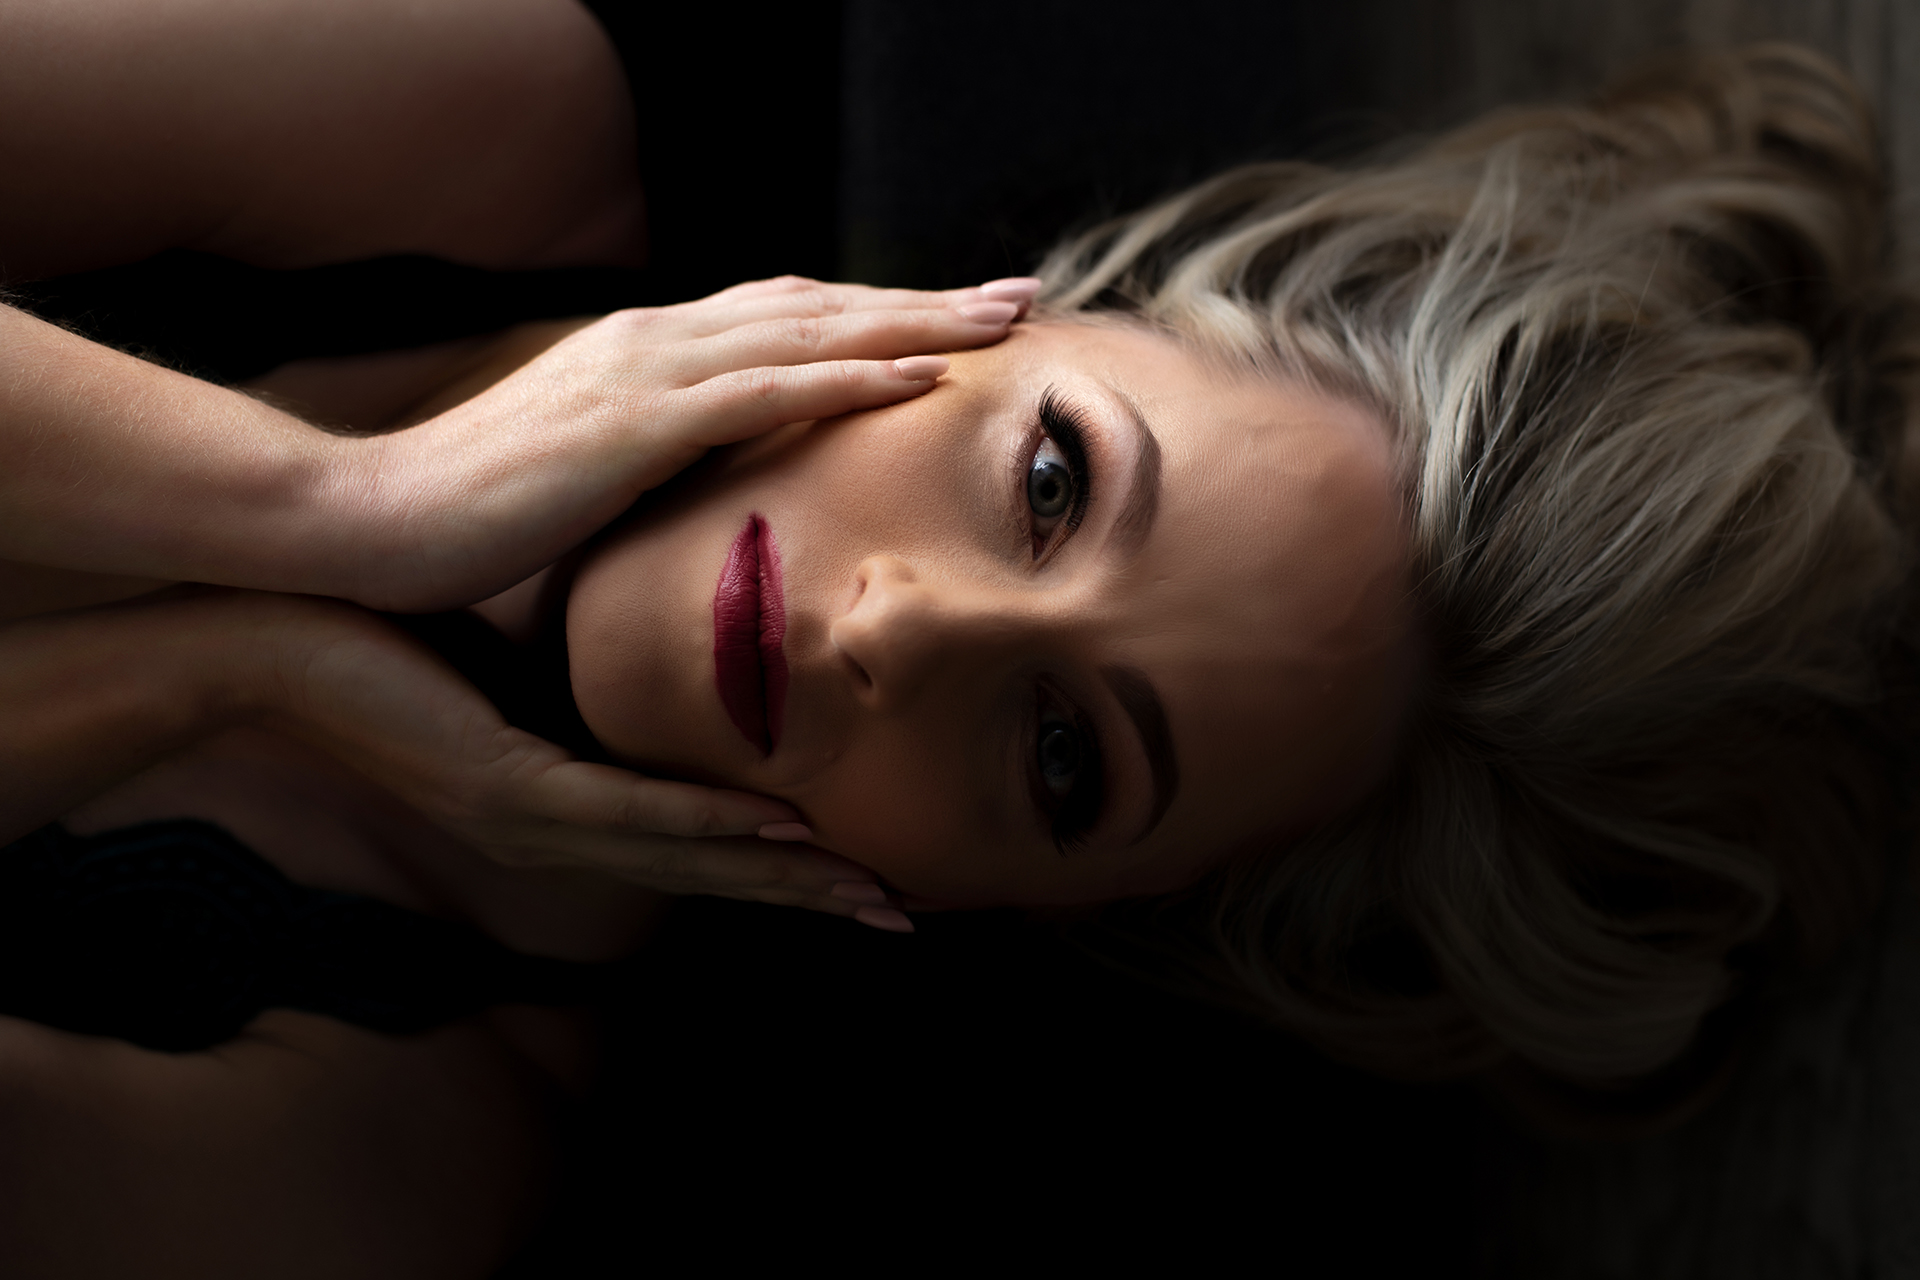 Boudoir pose featuring blonde touching her face.